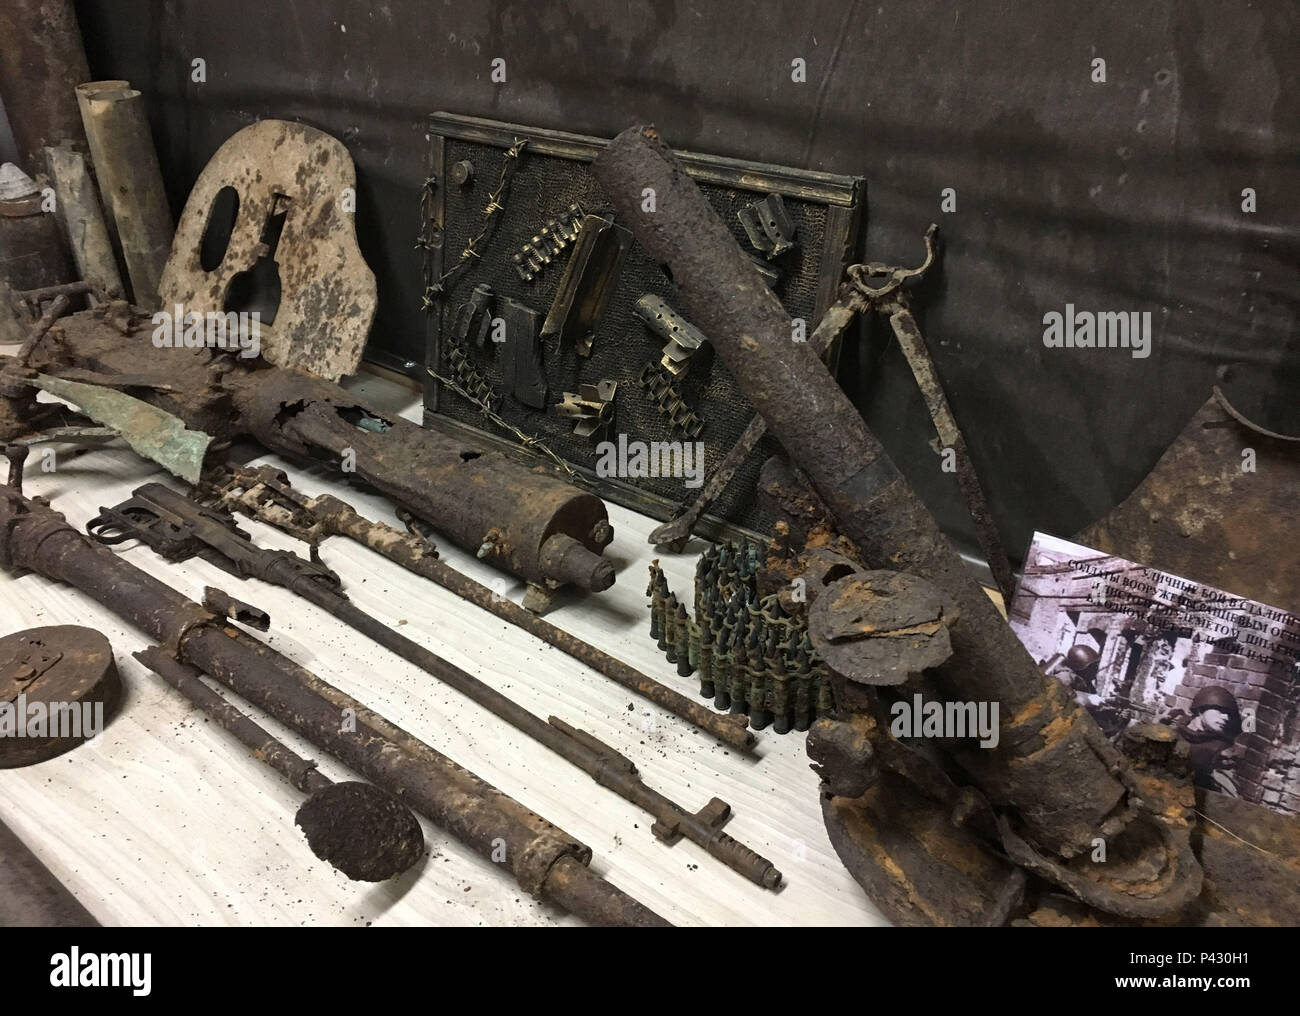 Rossoschka, Russia. 16th June, 2018. Remnants of the Battle of Stalingrad - grenade launchers, cartridges and parts of the weapons - can be seen in a hut in the «Rossoschka Military Cemetery», which houses a small private museum that has been cared for by the 72-year-old Vitaly Danilkin as a caretaker for three years. In the cemetery not only soldiers of the German Wehrmacht are buried, but also members of the Red Army. Credit: Martin Moravec/dpa/Alamy Live News - Stock Image